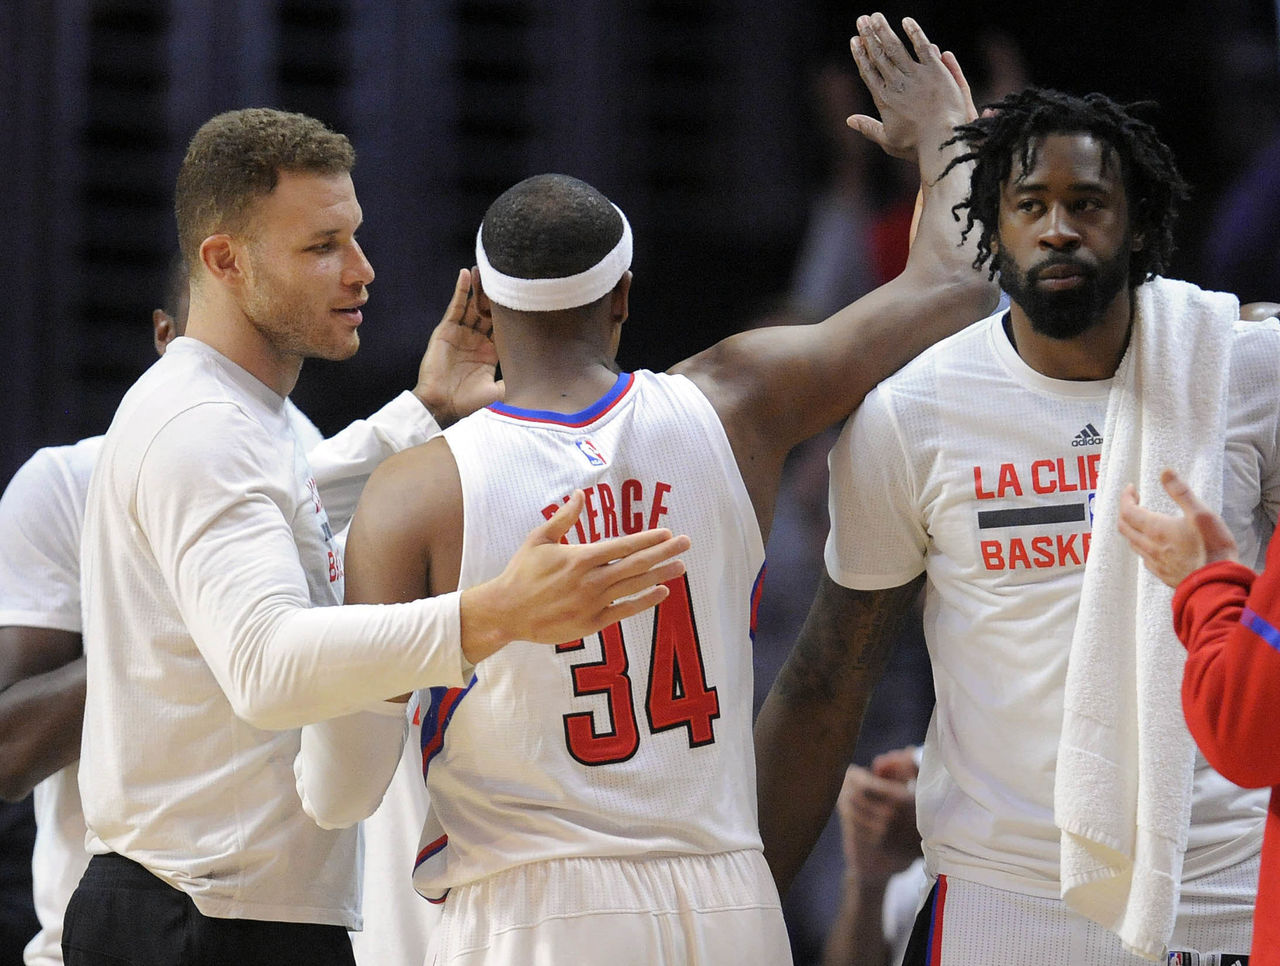 Cropped_2017-04-11t054713z_1603846470_nocid_rtrmadp_3_nba-houston-rockets-at-los-angeles-clippers